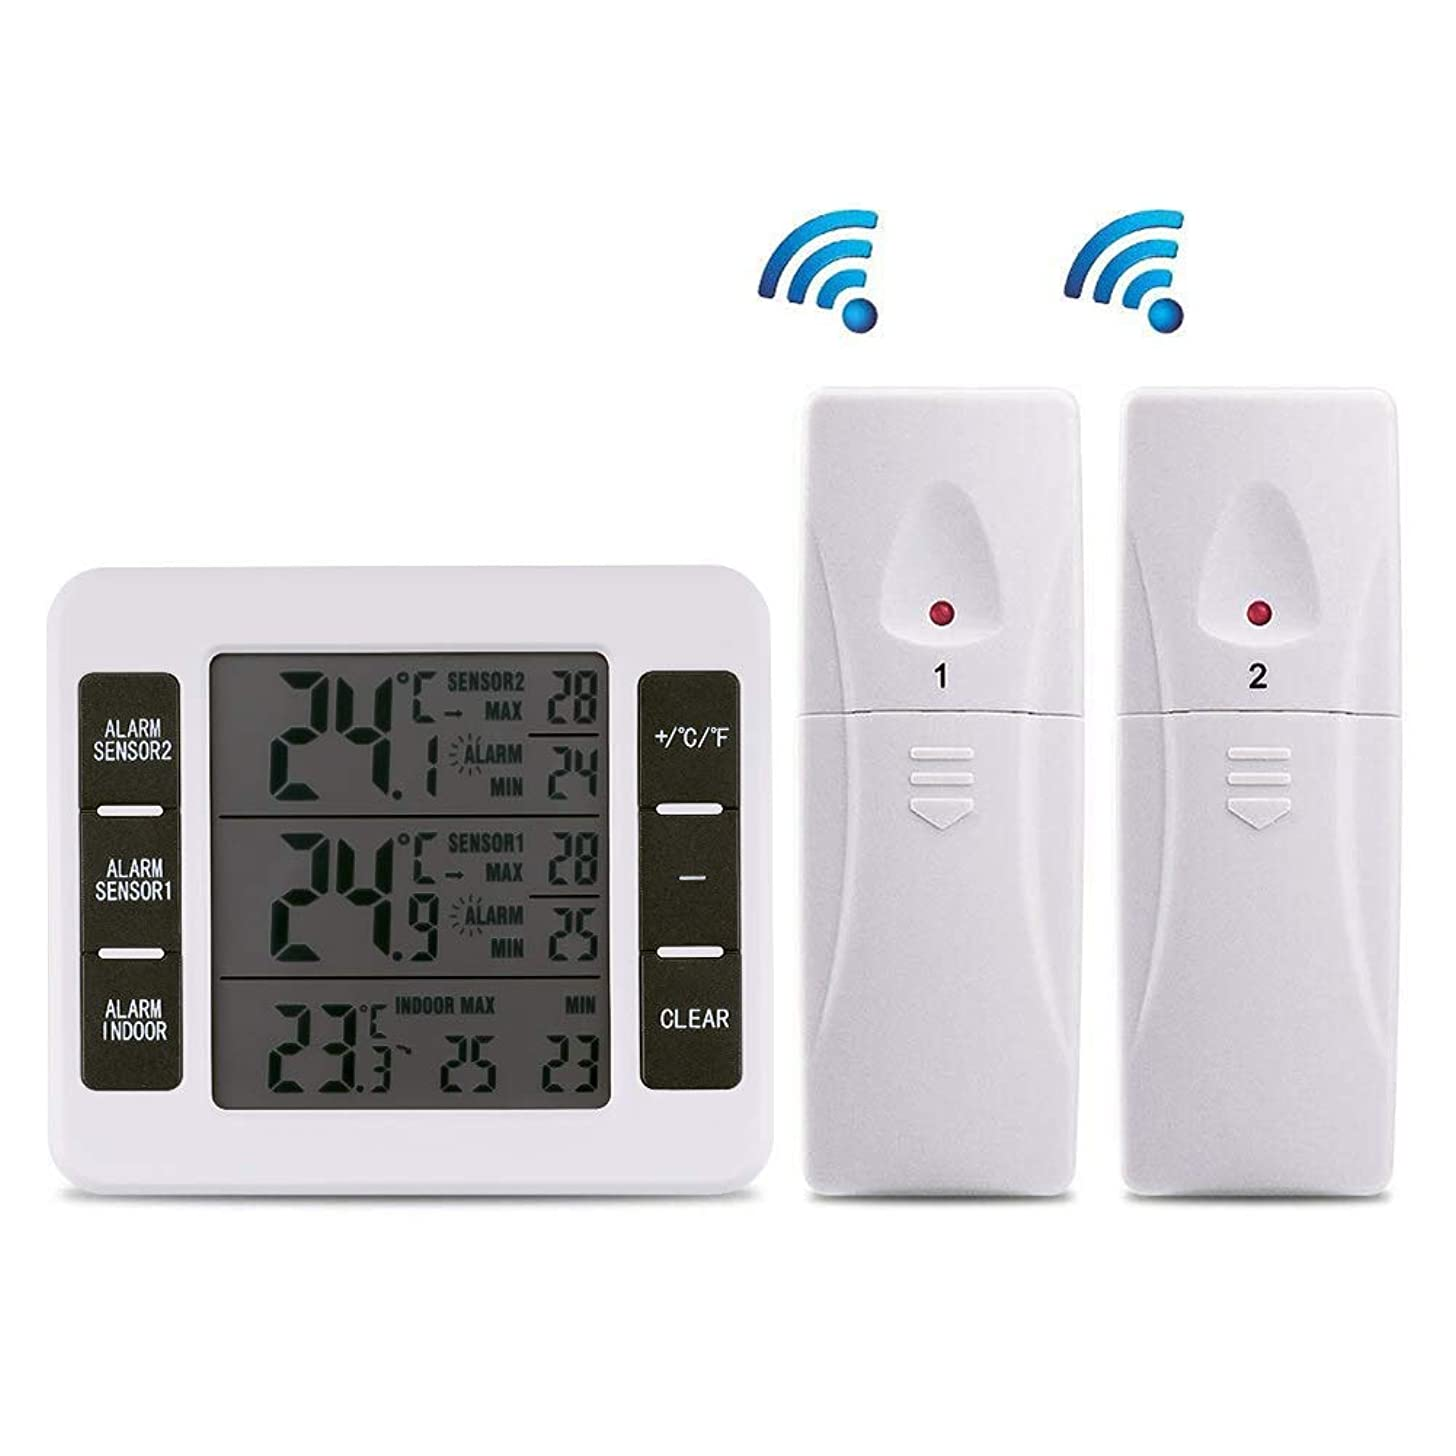 【Upgraded Version】Esnow Refrigerator Thermometer Wireless Digital Freezer Thermometer Digital Sensor with 2PCS Sensors Temperature Monitor and Audible Alarm for Indoor / Outdoor (Battery not Included)